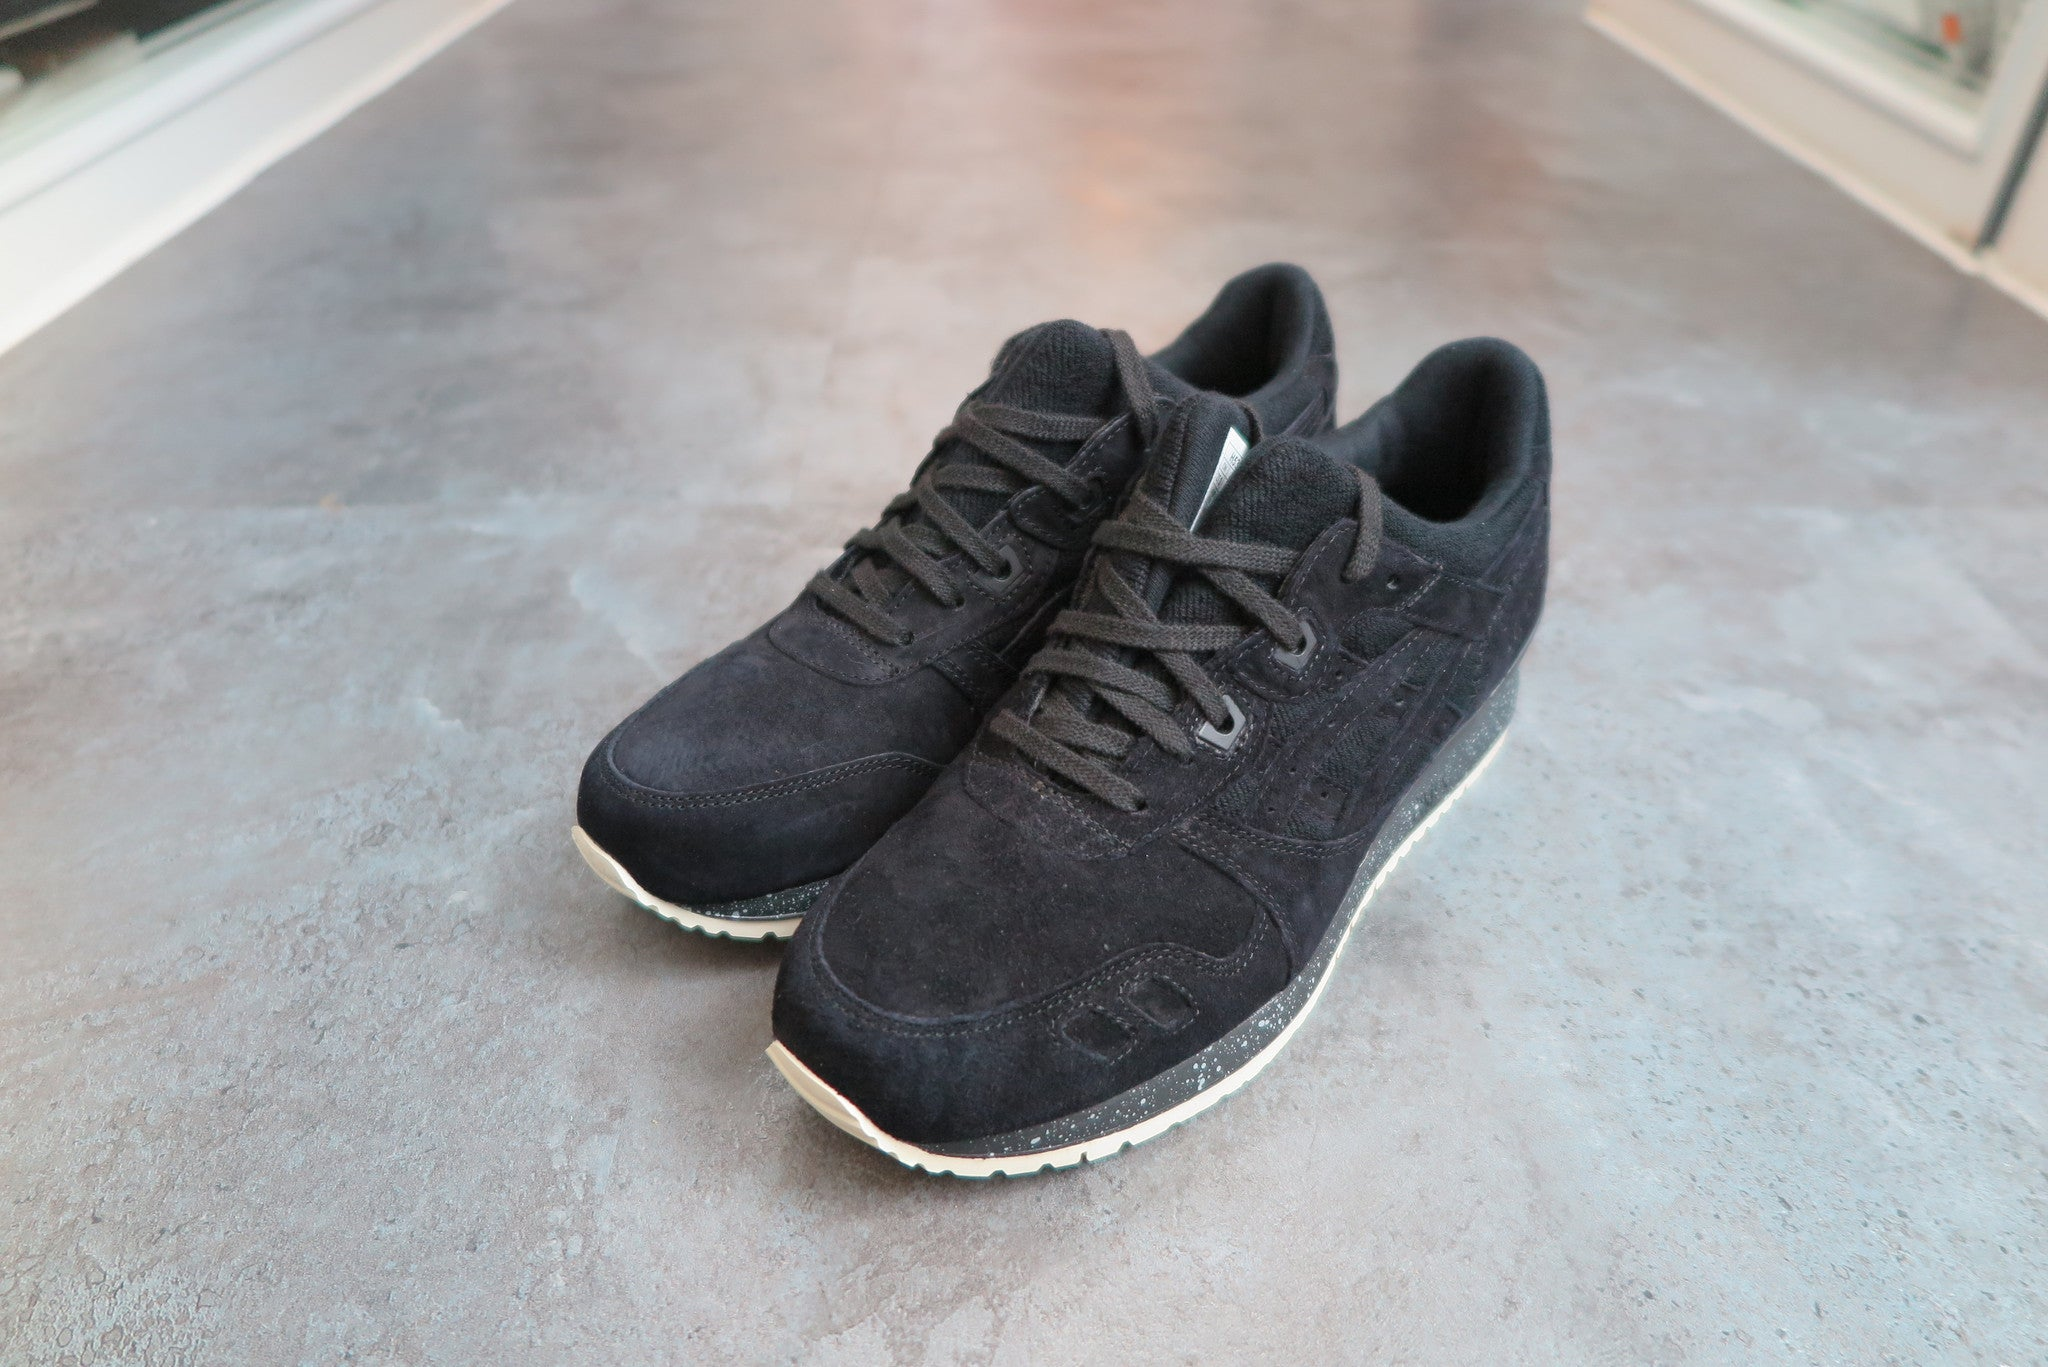 Reigning Champ X Asics Gel Lyte III in Black #H53GK-9090-Sneakers-Navy Selected Shop